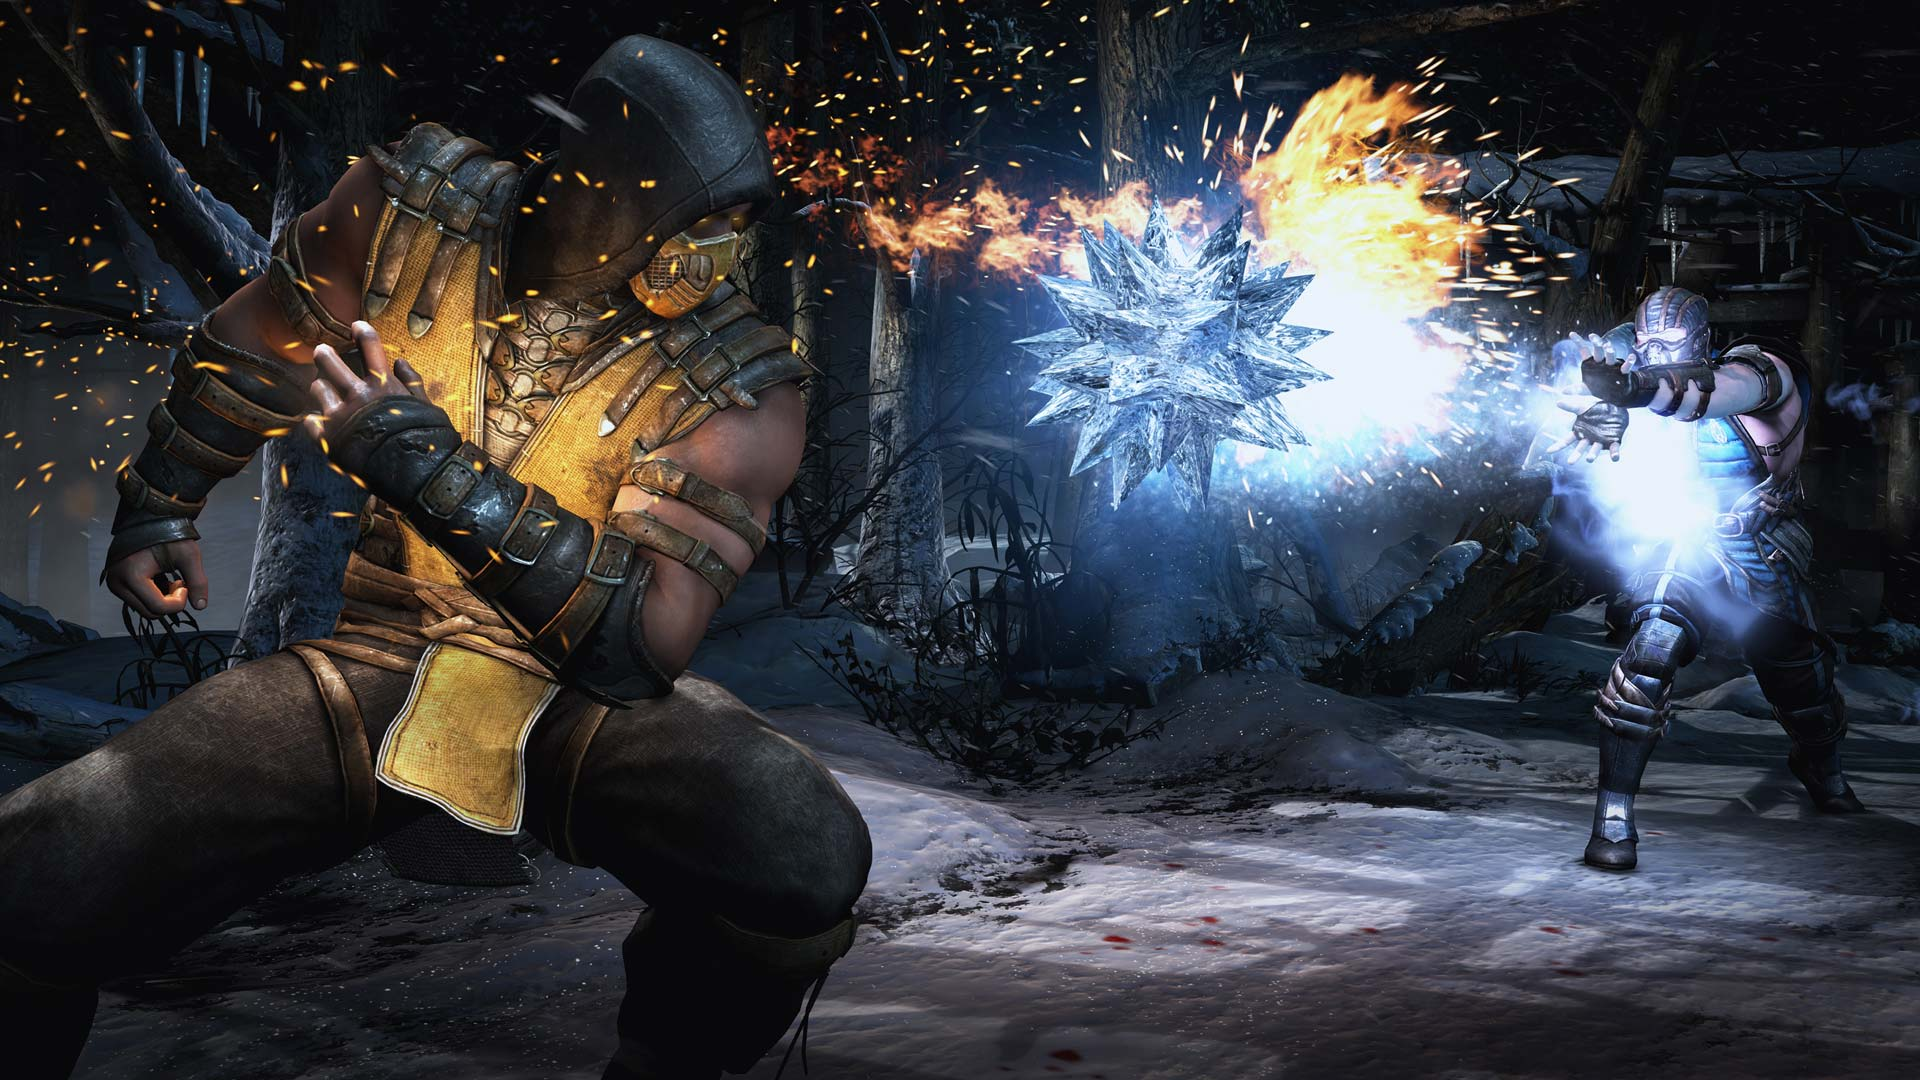 download mortal kombat xl repack by fitgirl include all dlcs + mkx multi8 singlelink iso rar part google drive direct link uptobox ftp link mirrorace multiup magnet extra torrent high seed thepiratebay kickass alternative